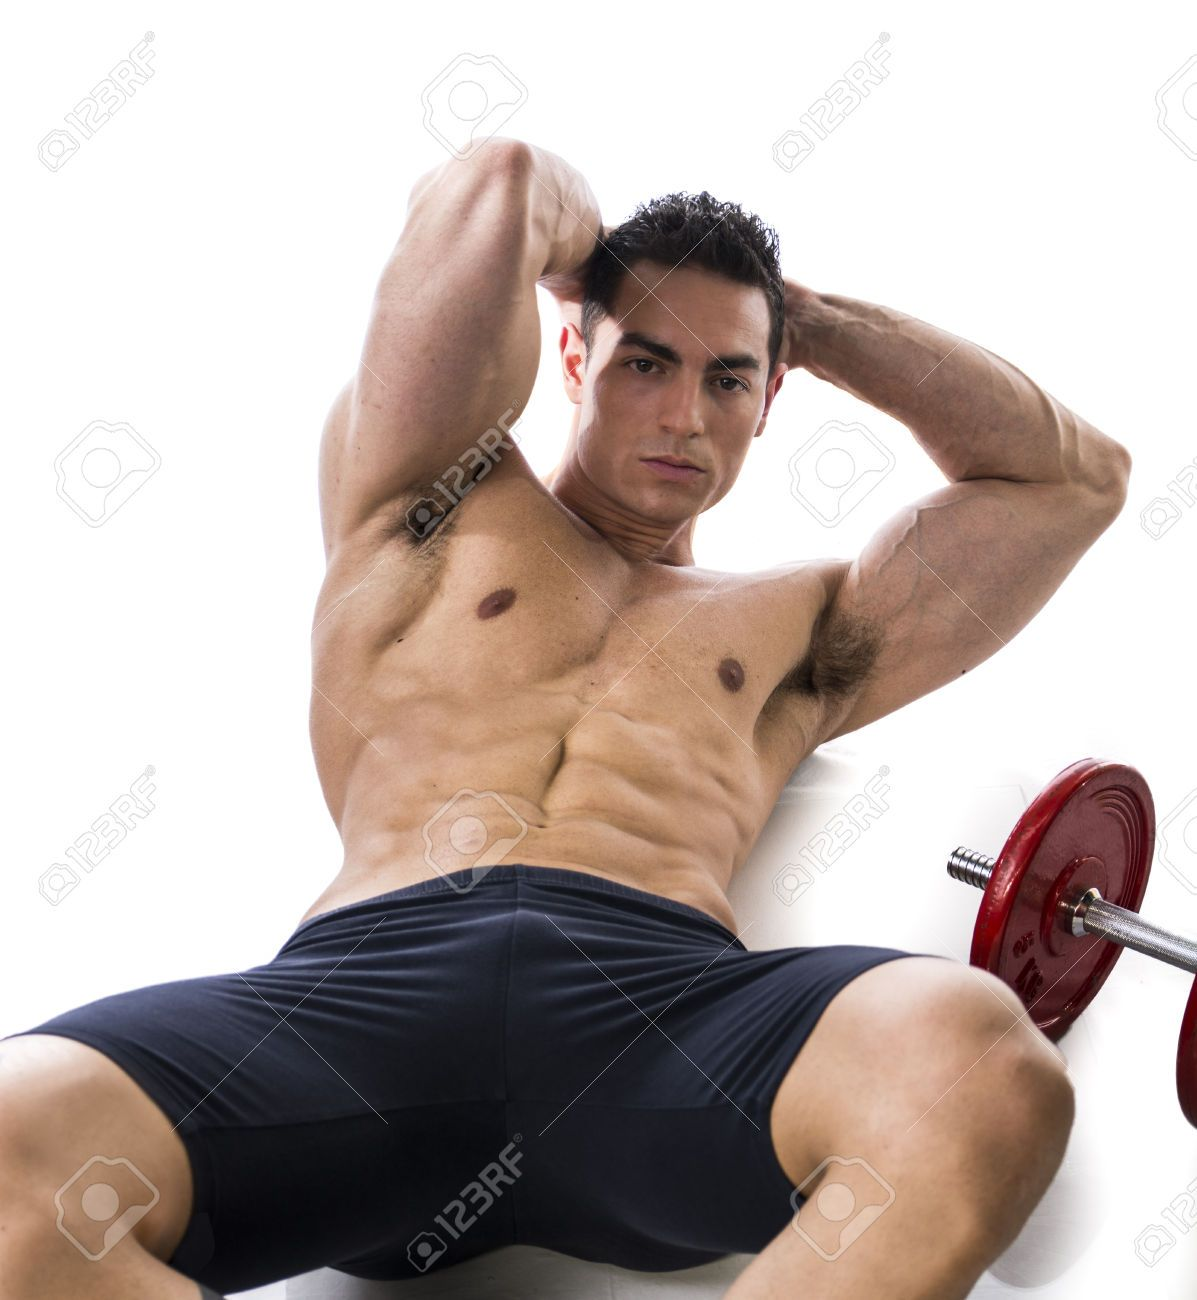 Fit Muscular Man Doing Exercises At The Gym Toning And Strengthening.. Stock Photo, Picture And Royalty Free Image. Image 29997178.